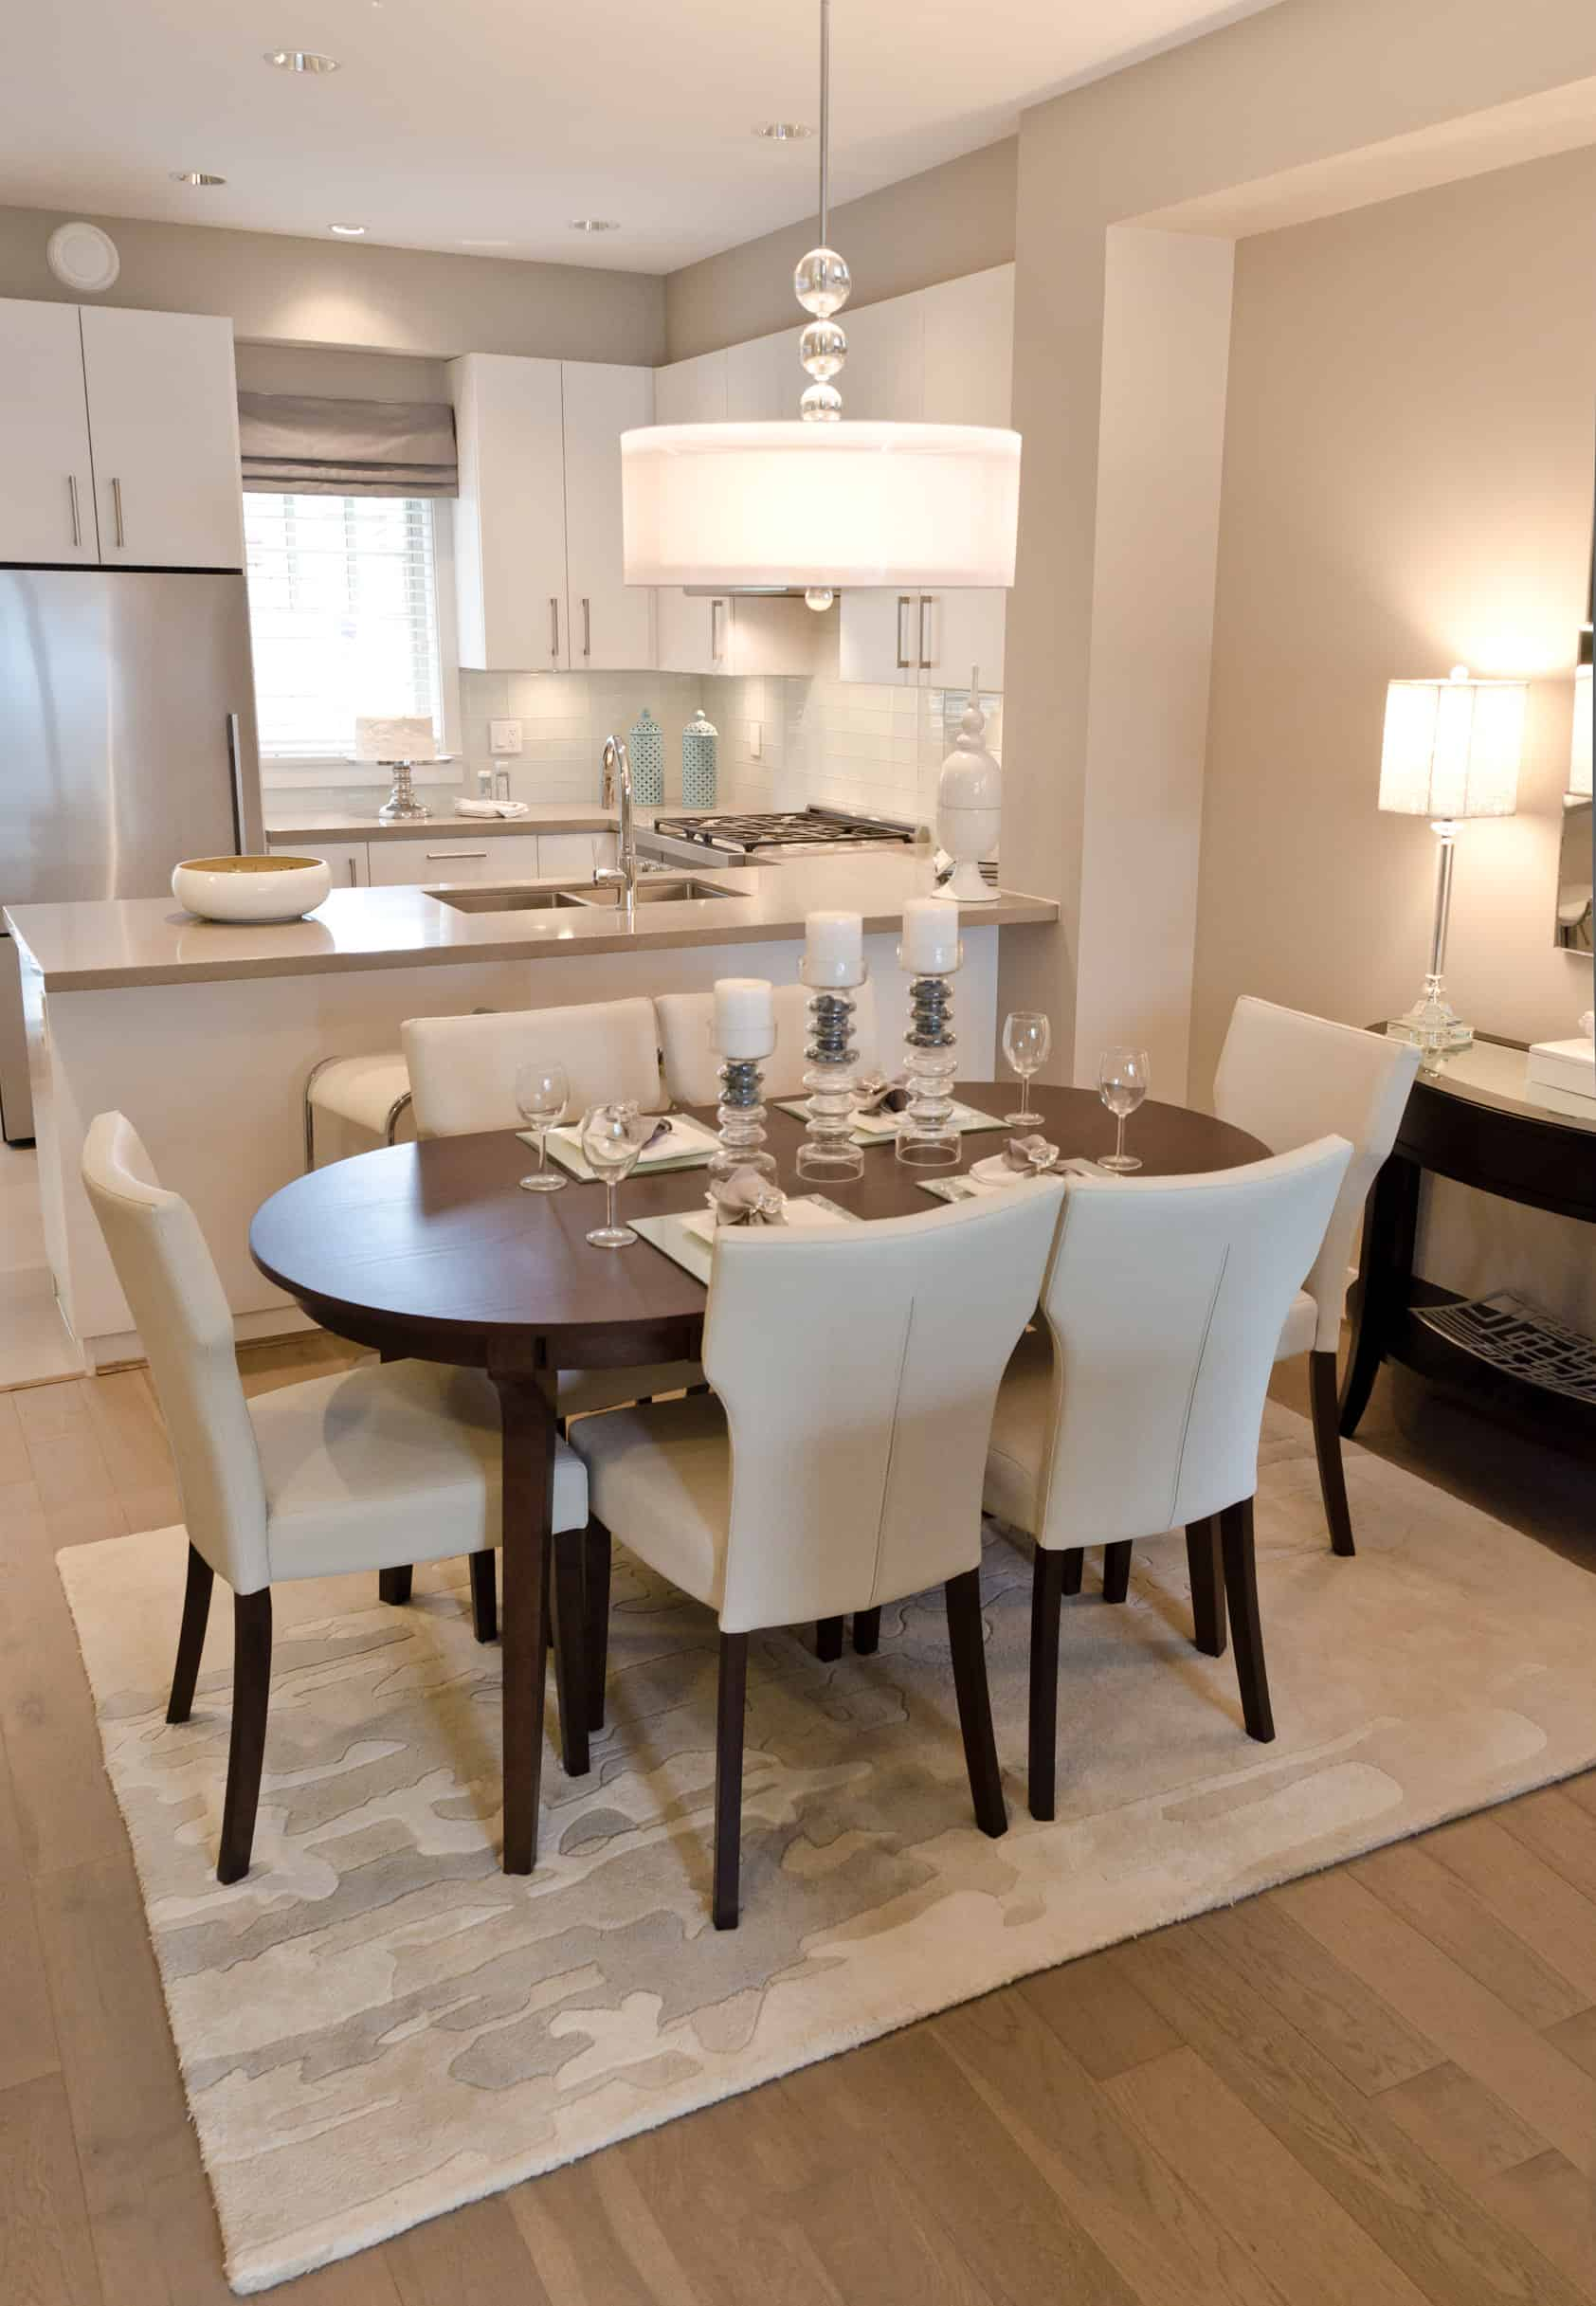 The soft pale tones are the characteristic of this dining room. The large white dining chairs look extremely soft and comfortable and surround a large oval wood table, which offers plenty of space for everyone in the family to eat comfortably. Several light fixtures and candlesticks provide plenty of bright light to the room. The room has an aura of grace and refinement.